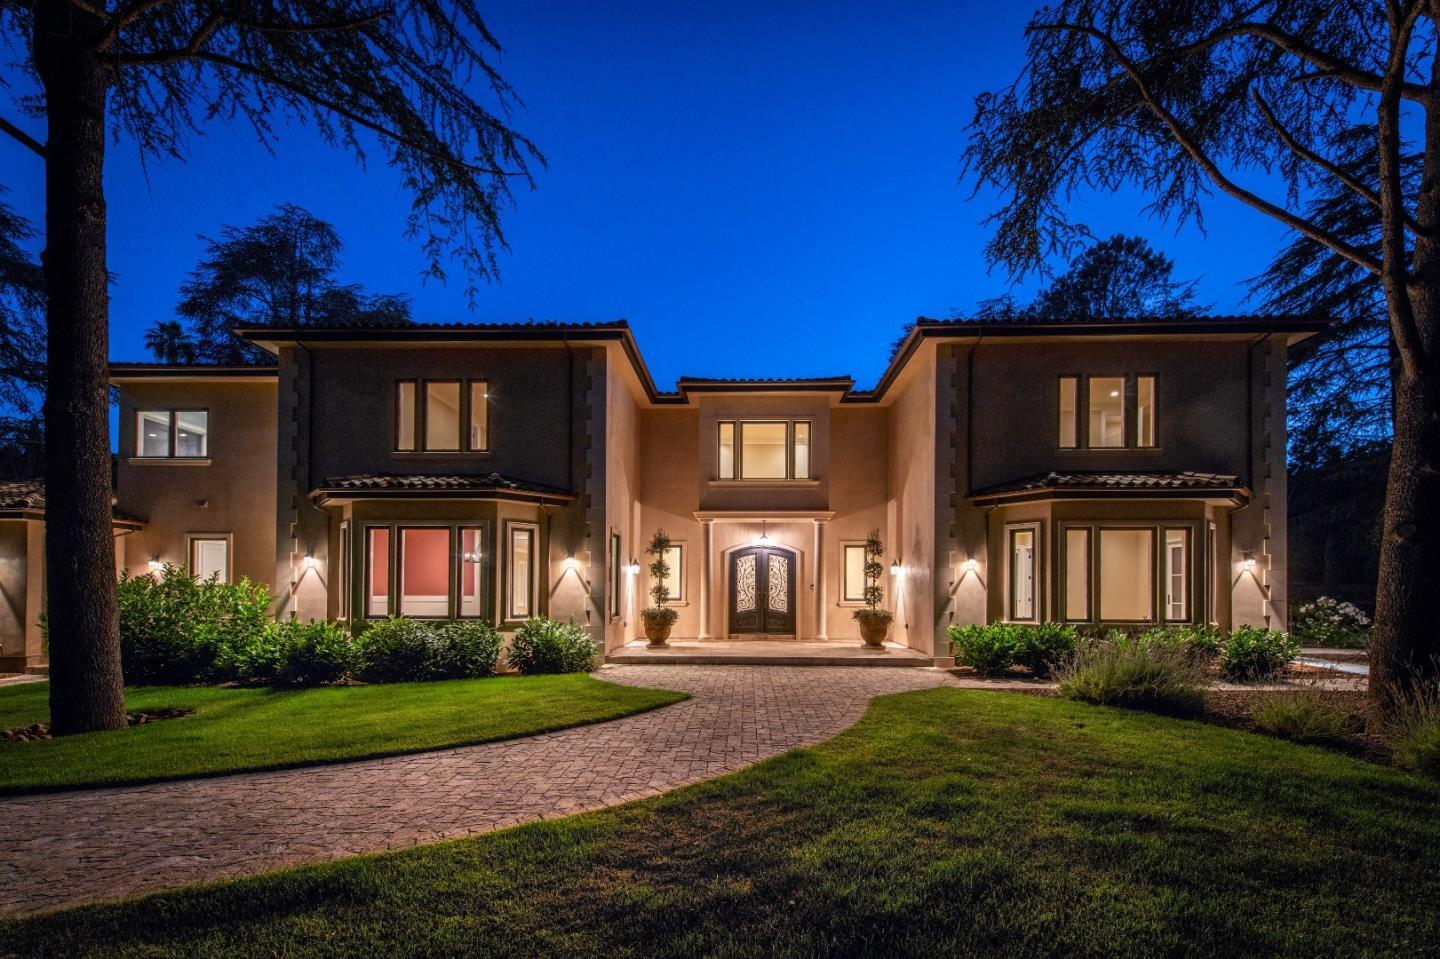 Local Real Estate: Homes for Sale — Los Altos Hills, CA — Coldwell ...